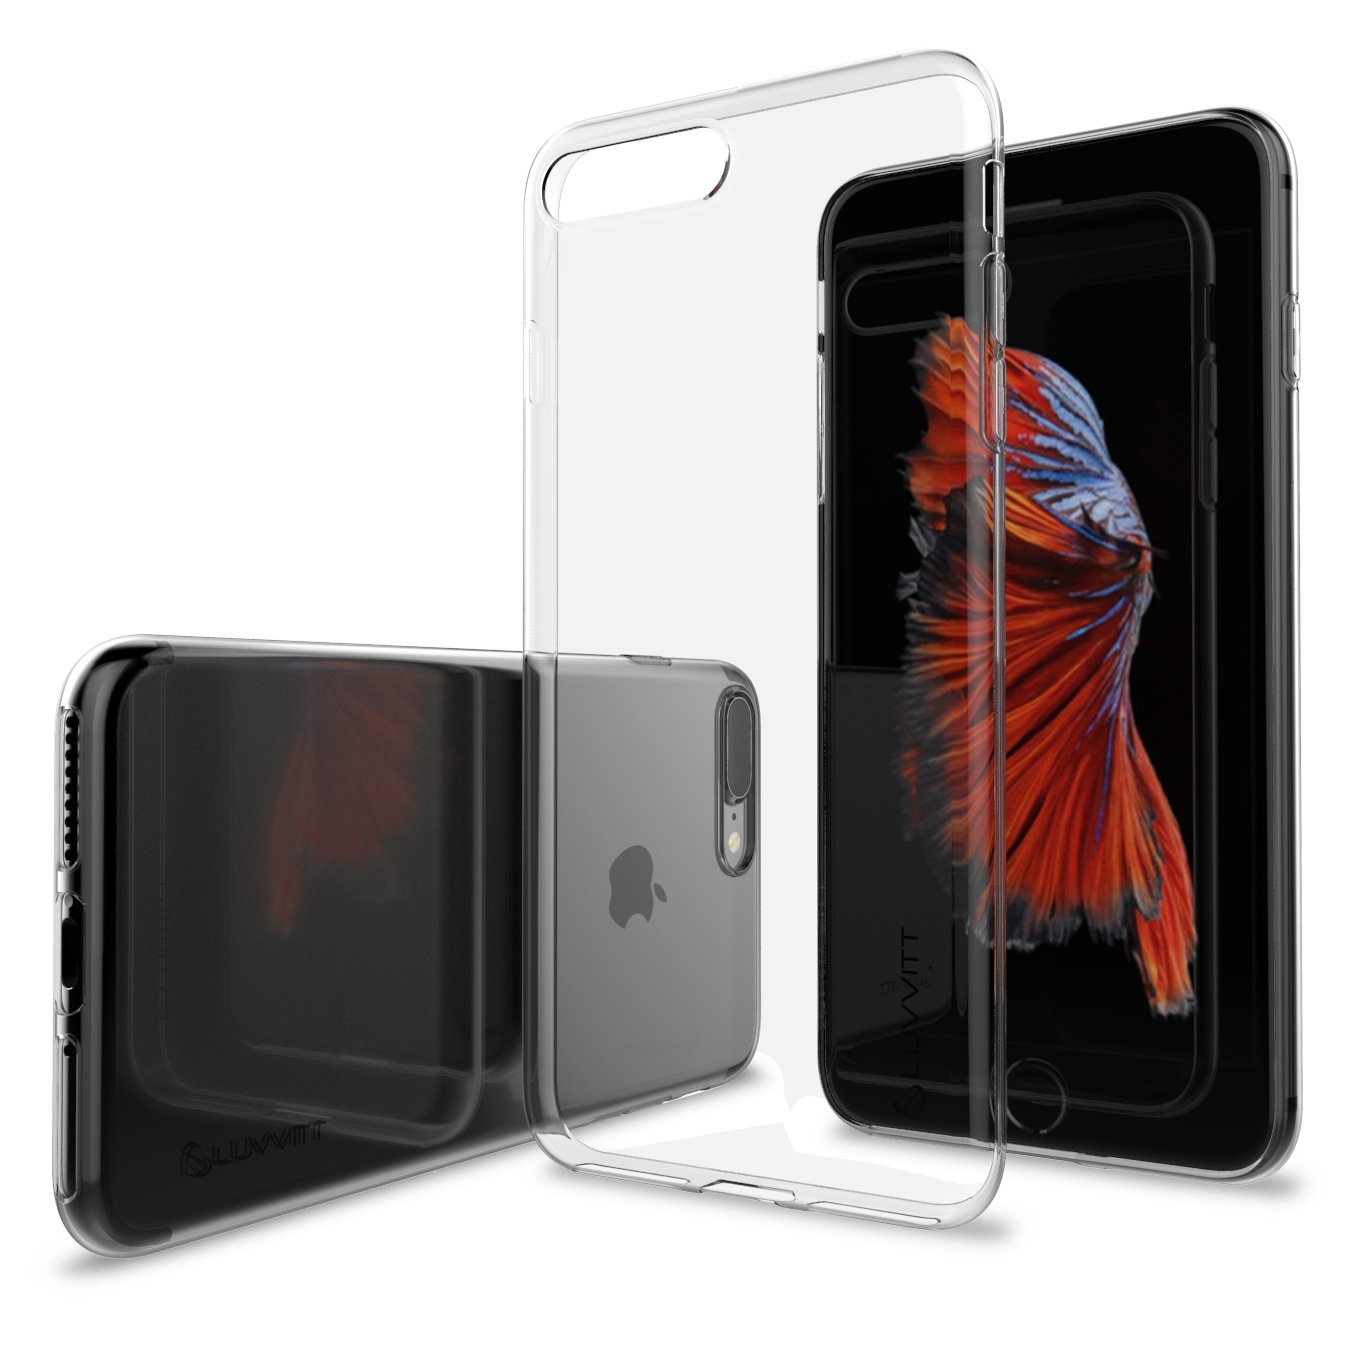 3409d541c3a Get Quotations · Luvvitt Ultra Slim iPhone 7 Plus / iPhone 8 Plus Case with  Flexible and Easy Grip